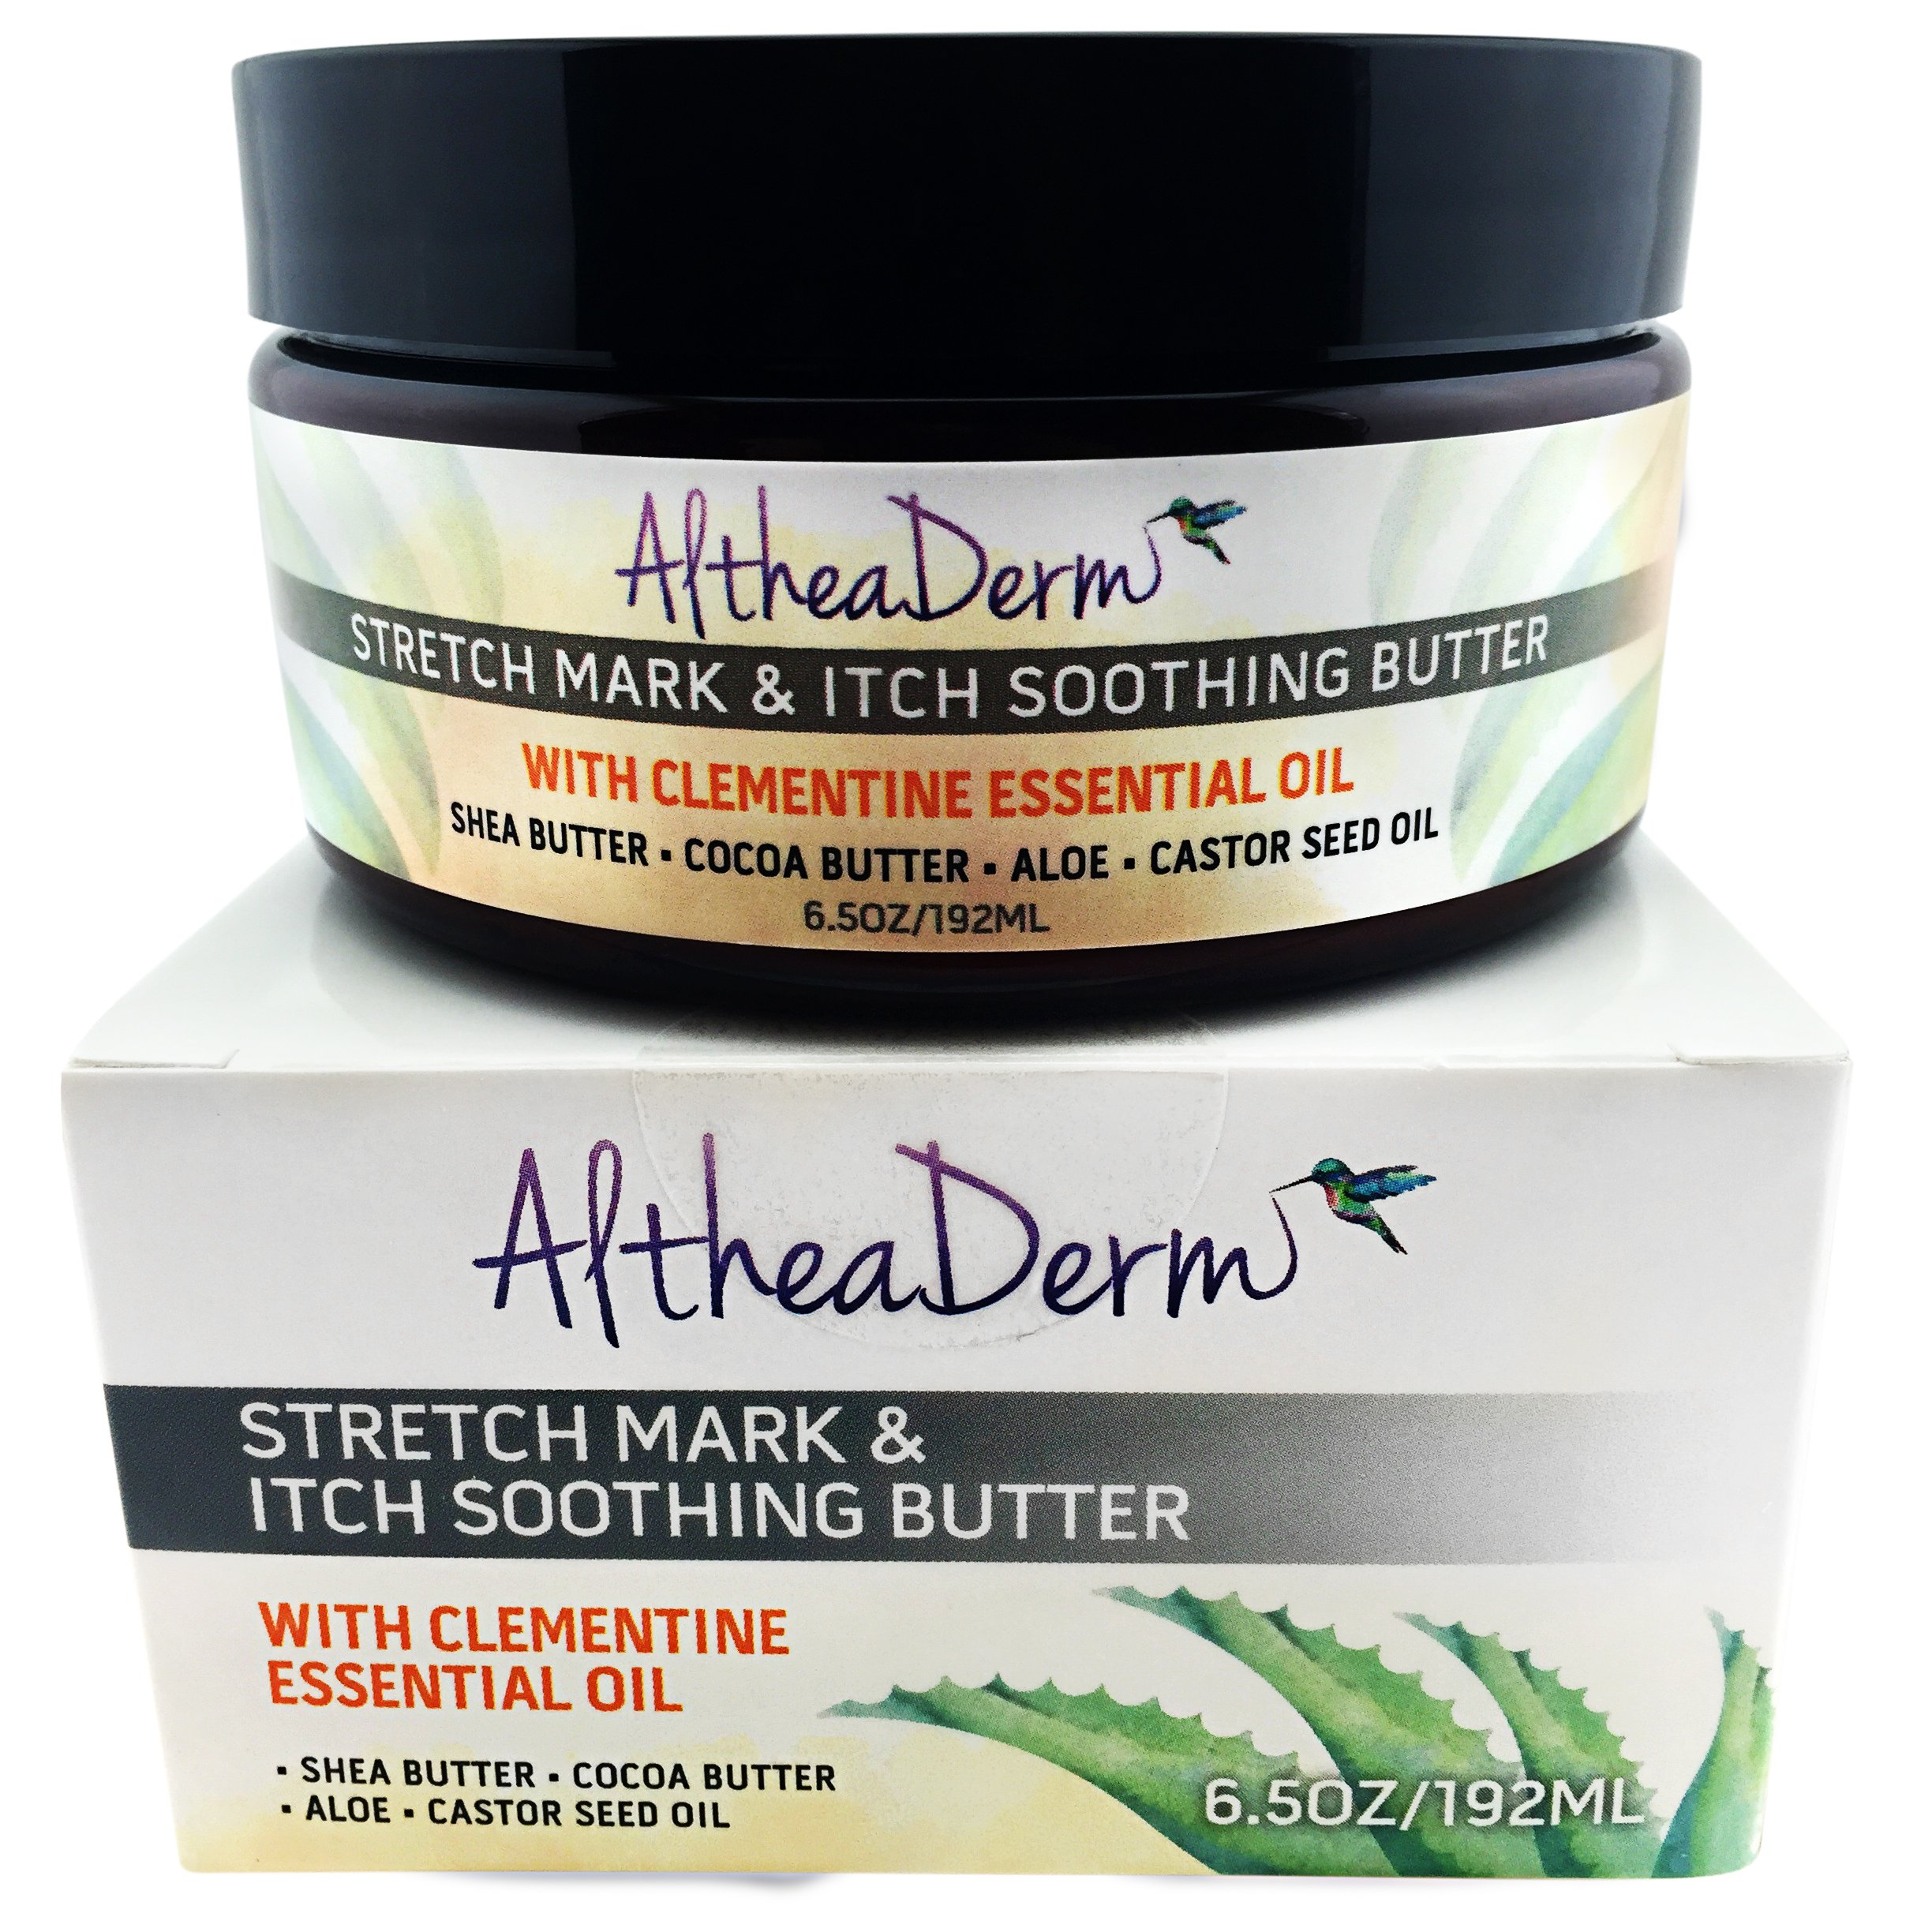 Stretch Mark Butter & Itch Soothing Butter w Clementine Essential Oil - Best Natural & Organic Ingredients - Itch Relief Cream - Stretch Mark Cream - Scar Cream - Pregnancy Oil & Pregnancy Cream in 1